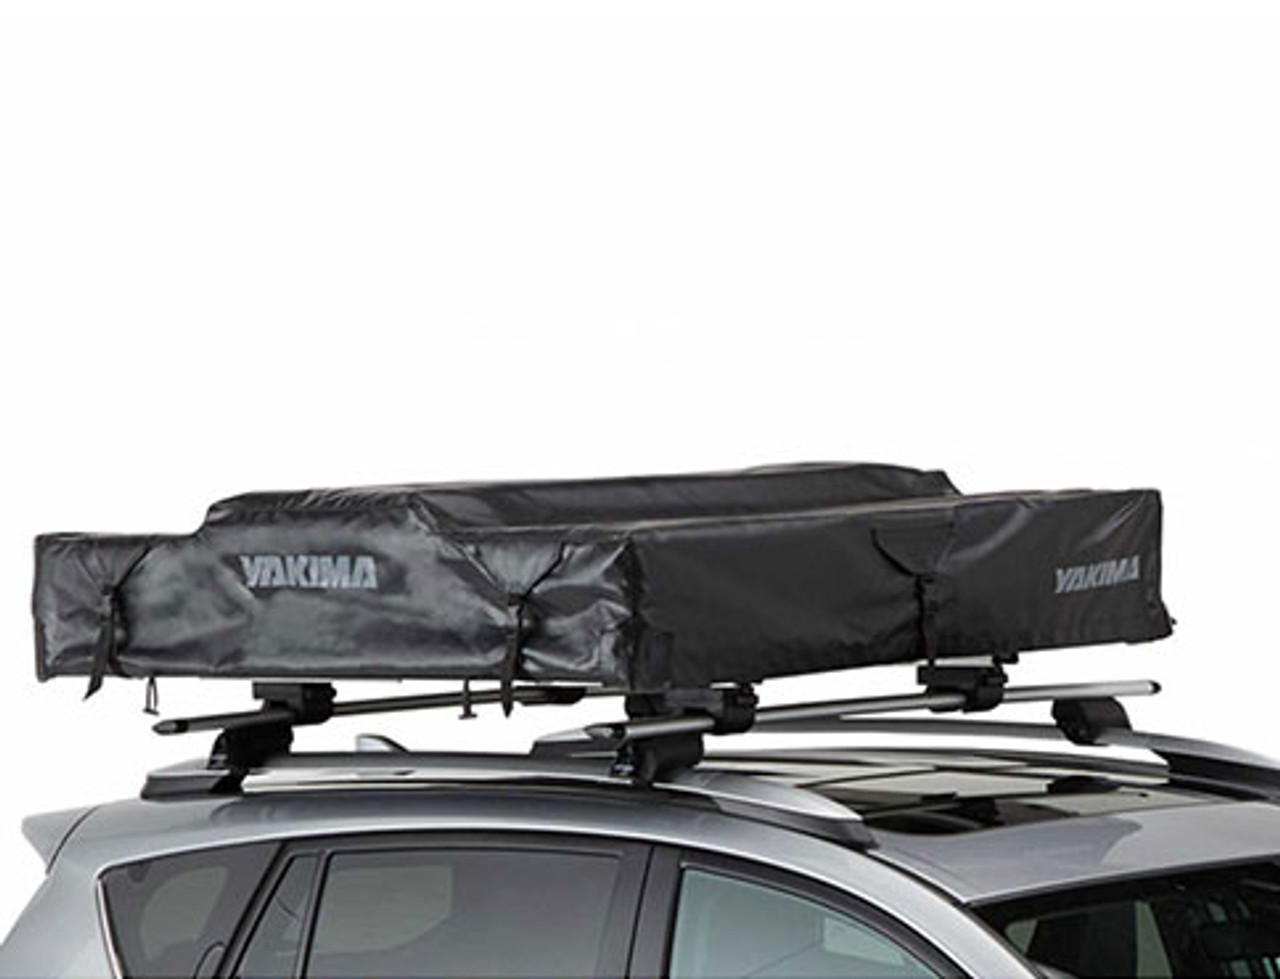 Yakima Skyrise Tent (small) for Toyota